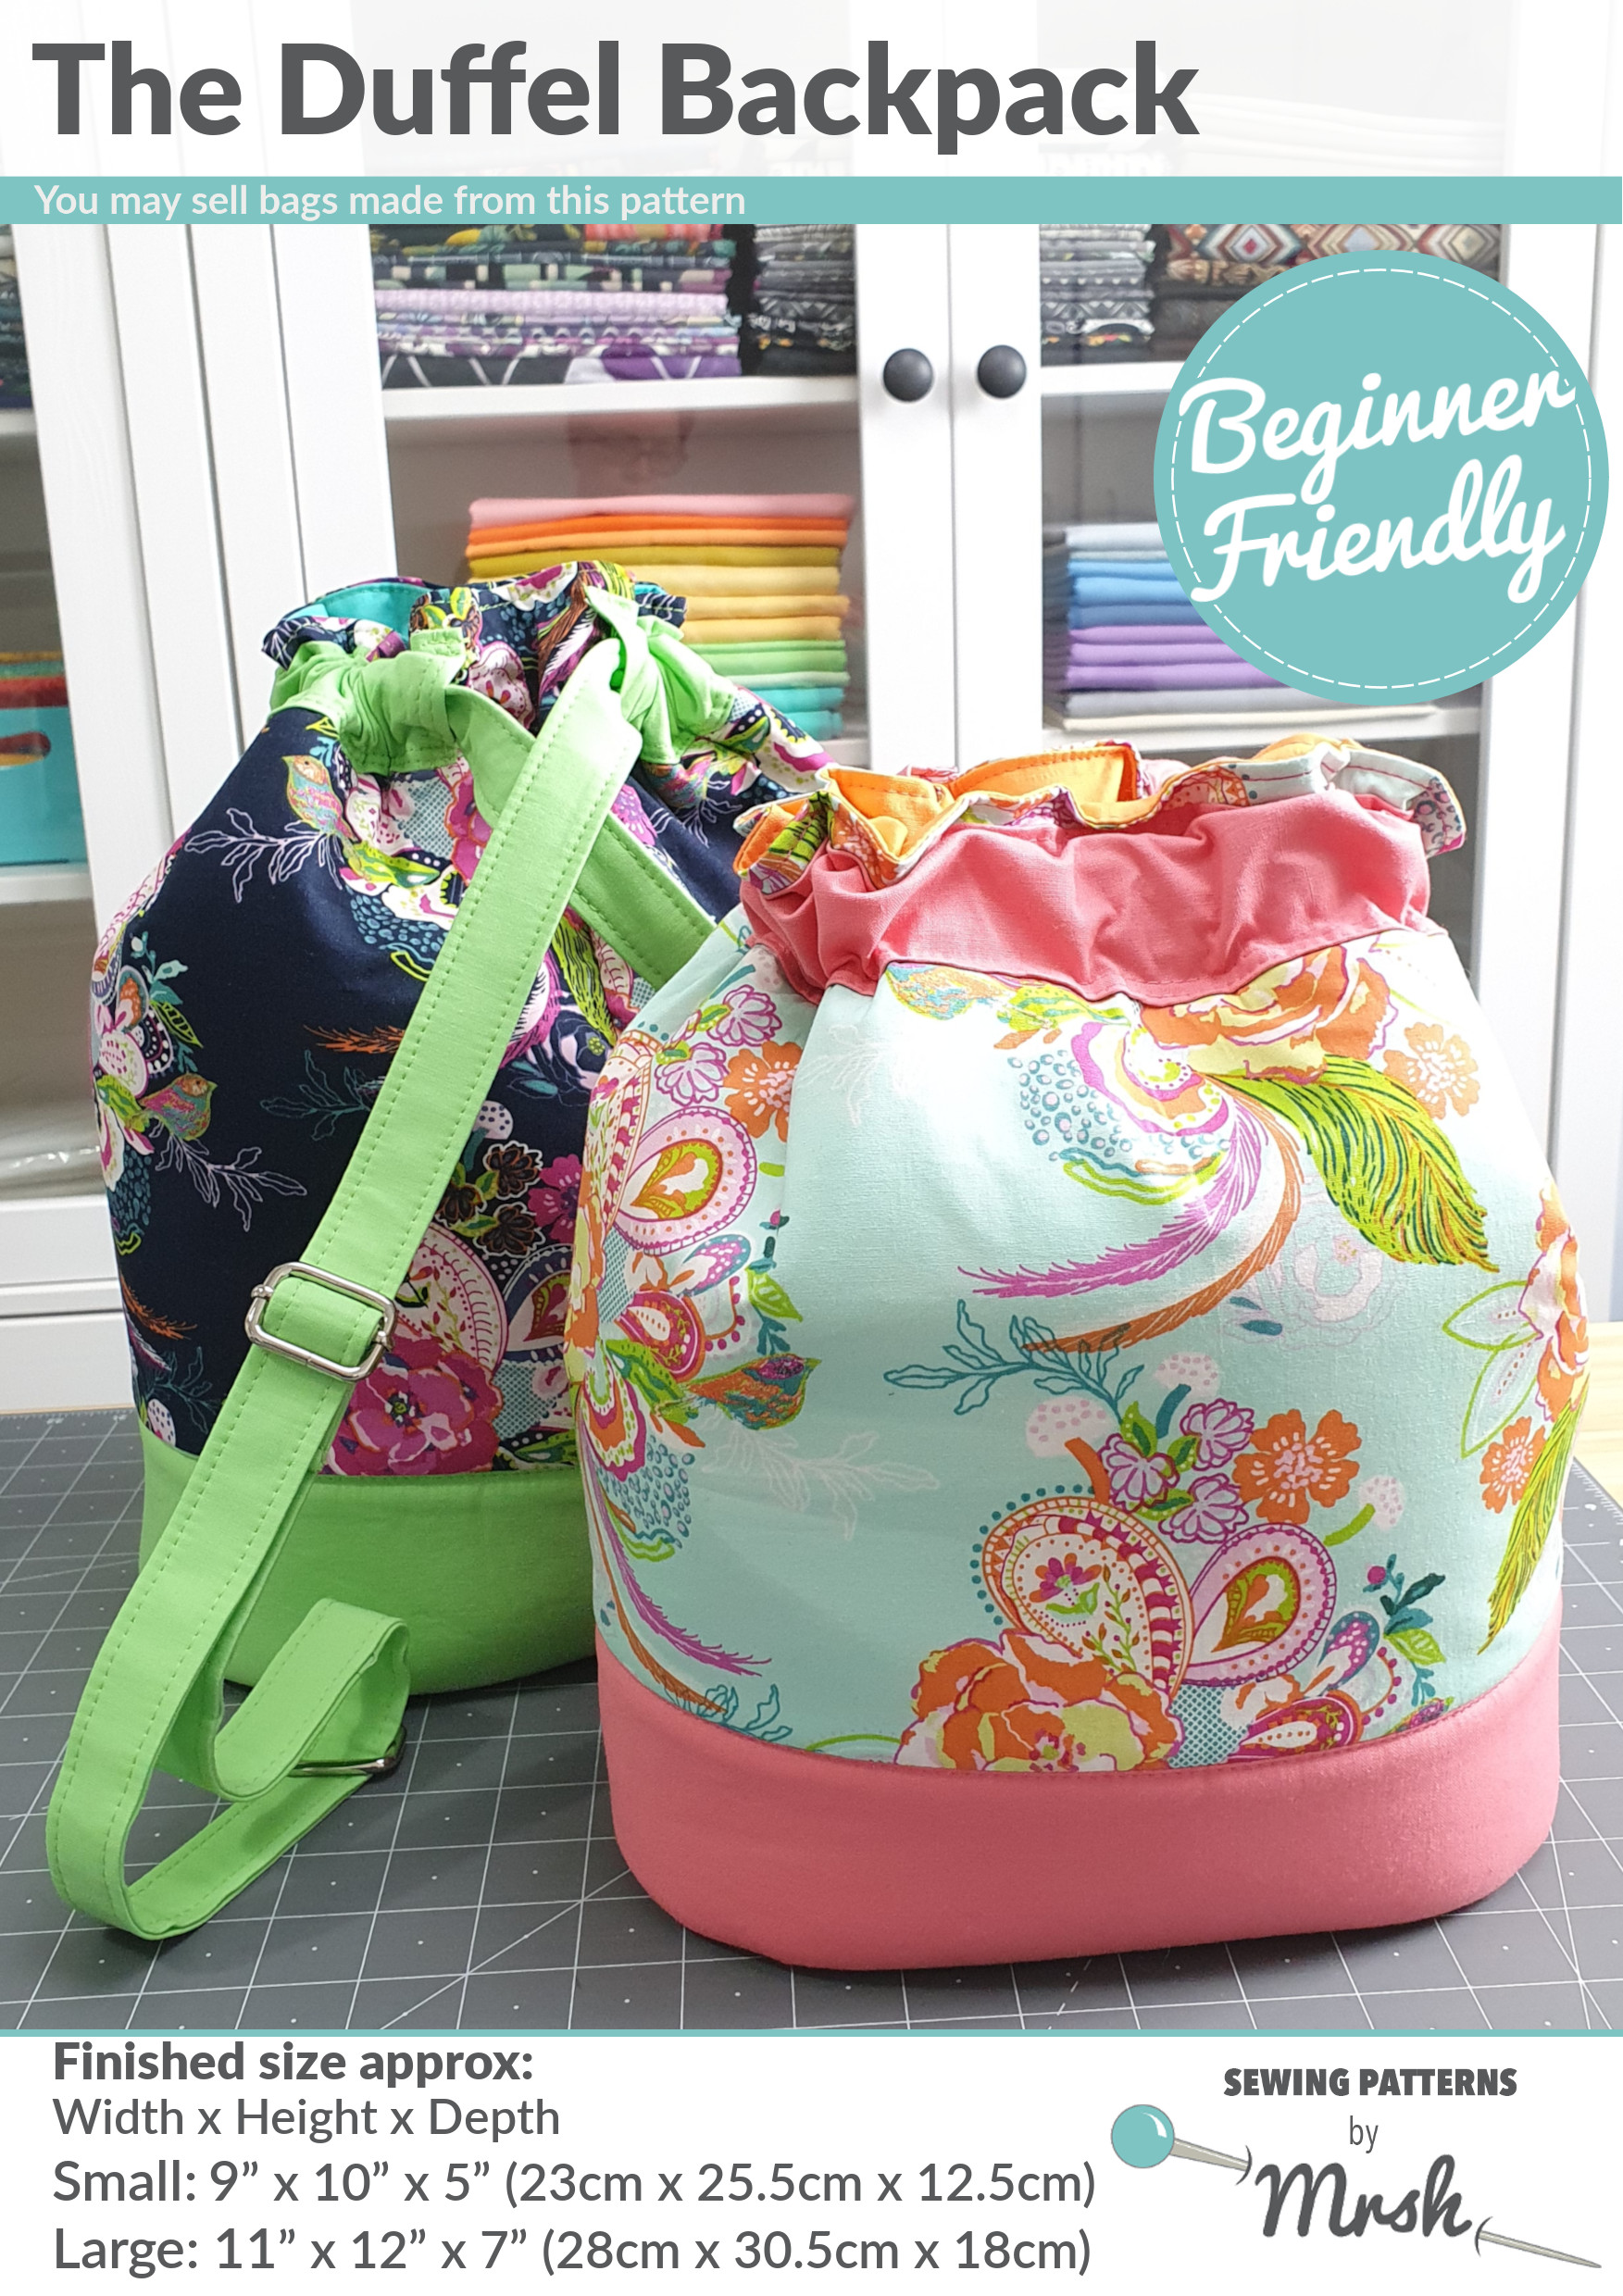 The Duffel Backpack sewing pattern - front cover